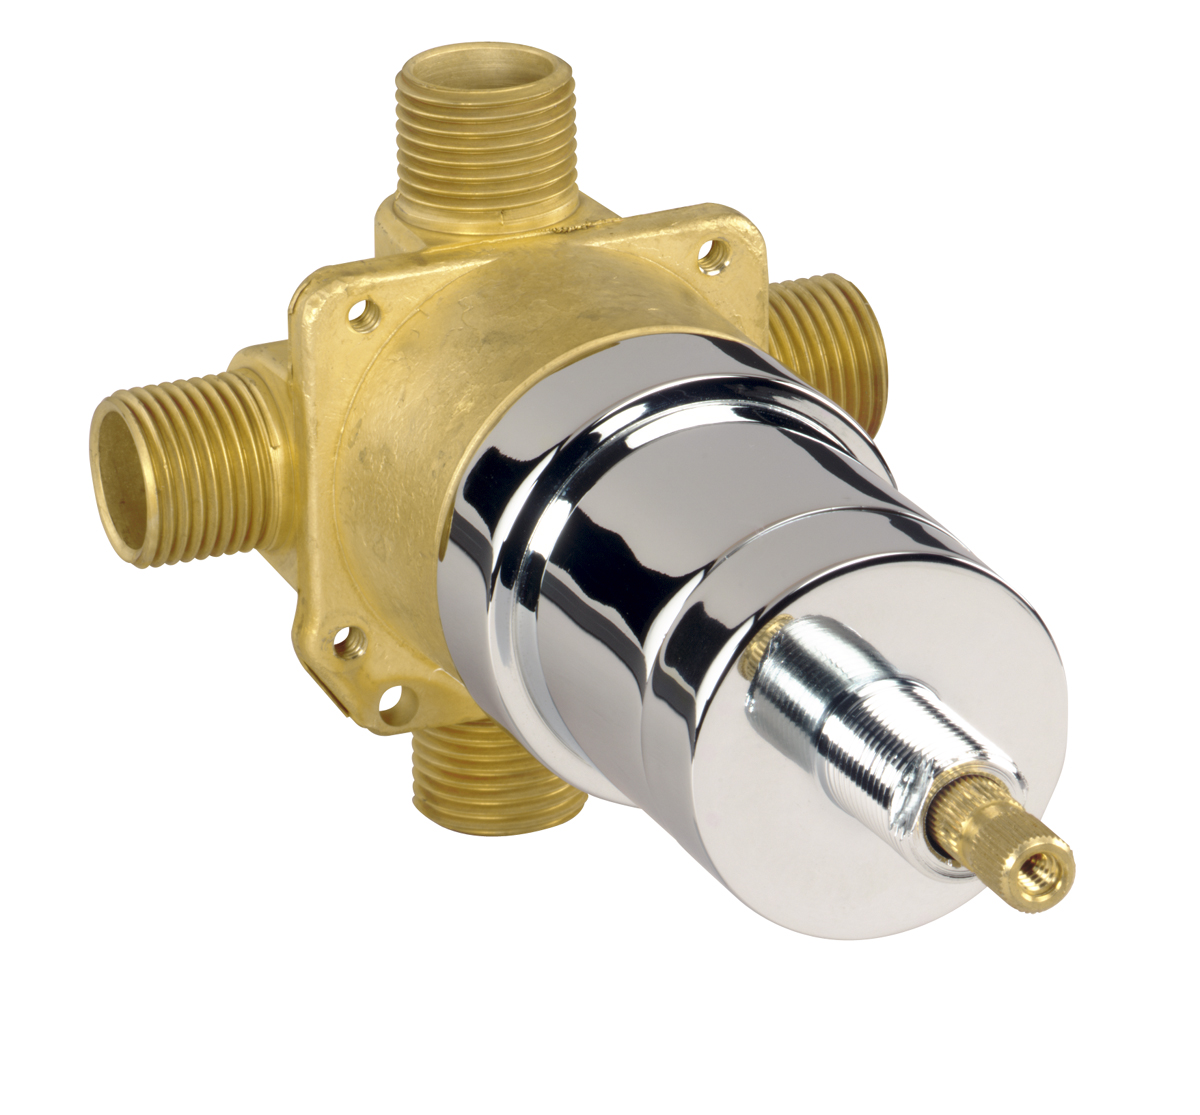 While Supplies Last Pressure Balance Valve W Ceramic